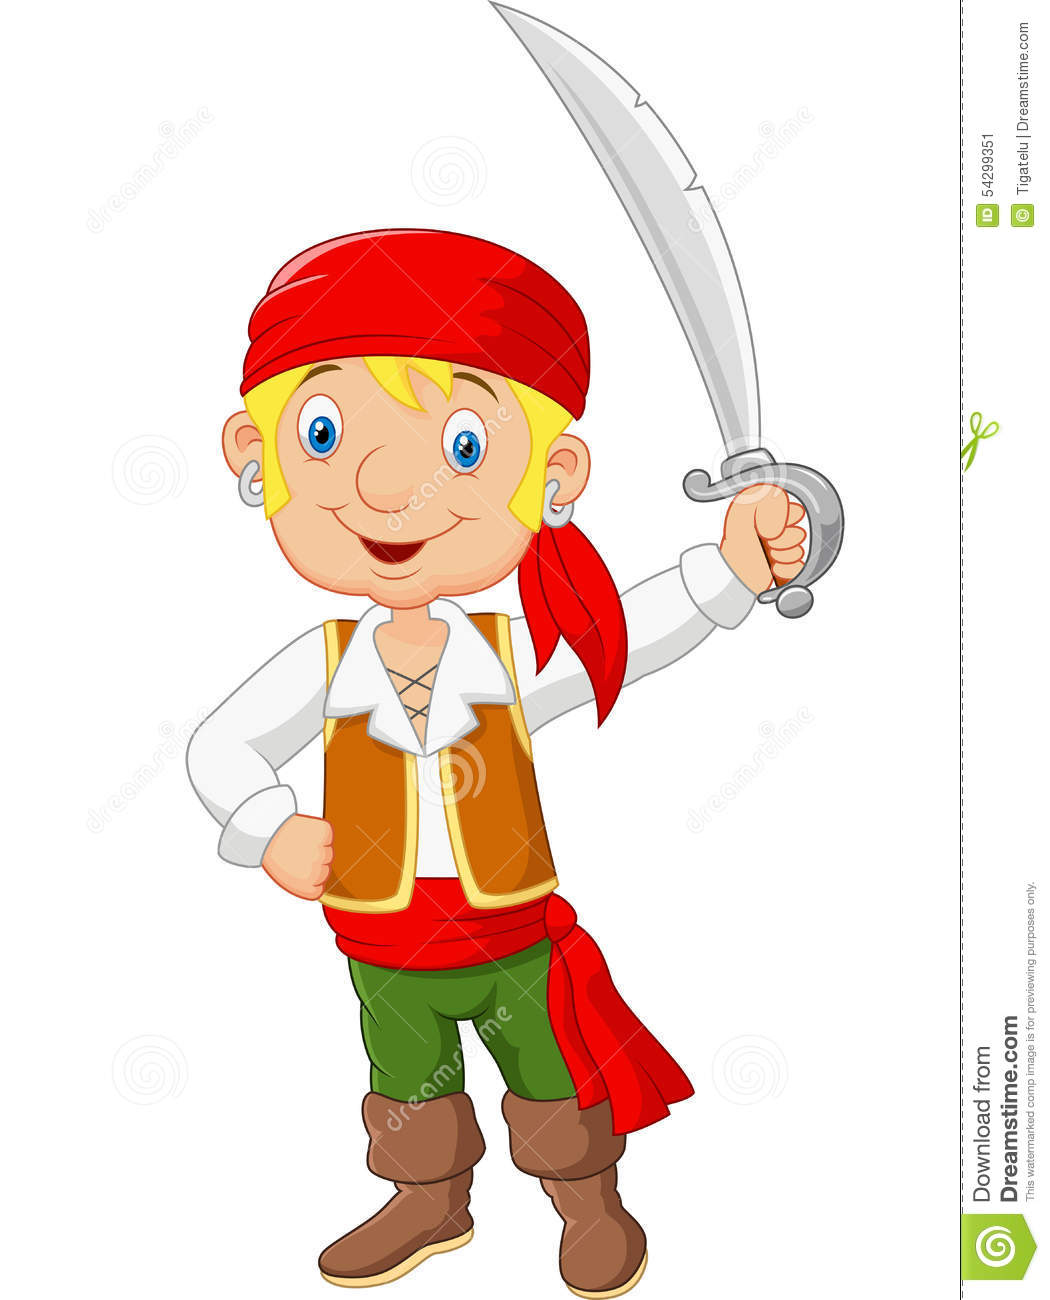 Cartoon pirate sword